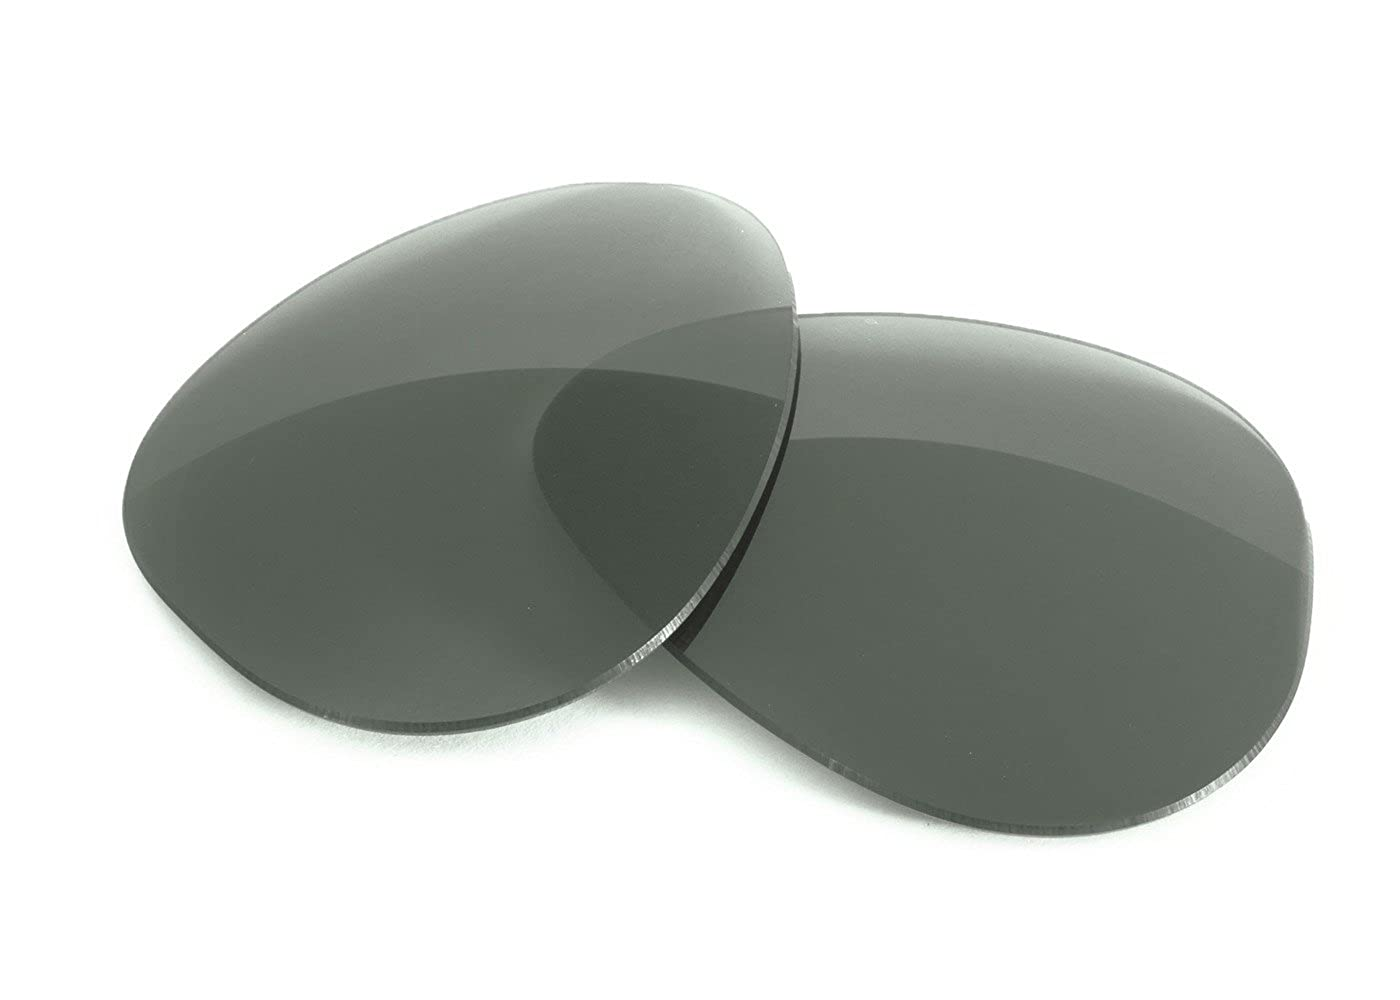 aea68a41d81 Amazon.com  Fuse Lenses for Ray-Ban RB7021 Matthew (55mm) - G15 Polarized   Clothing